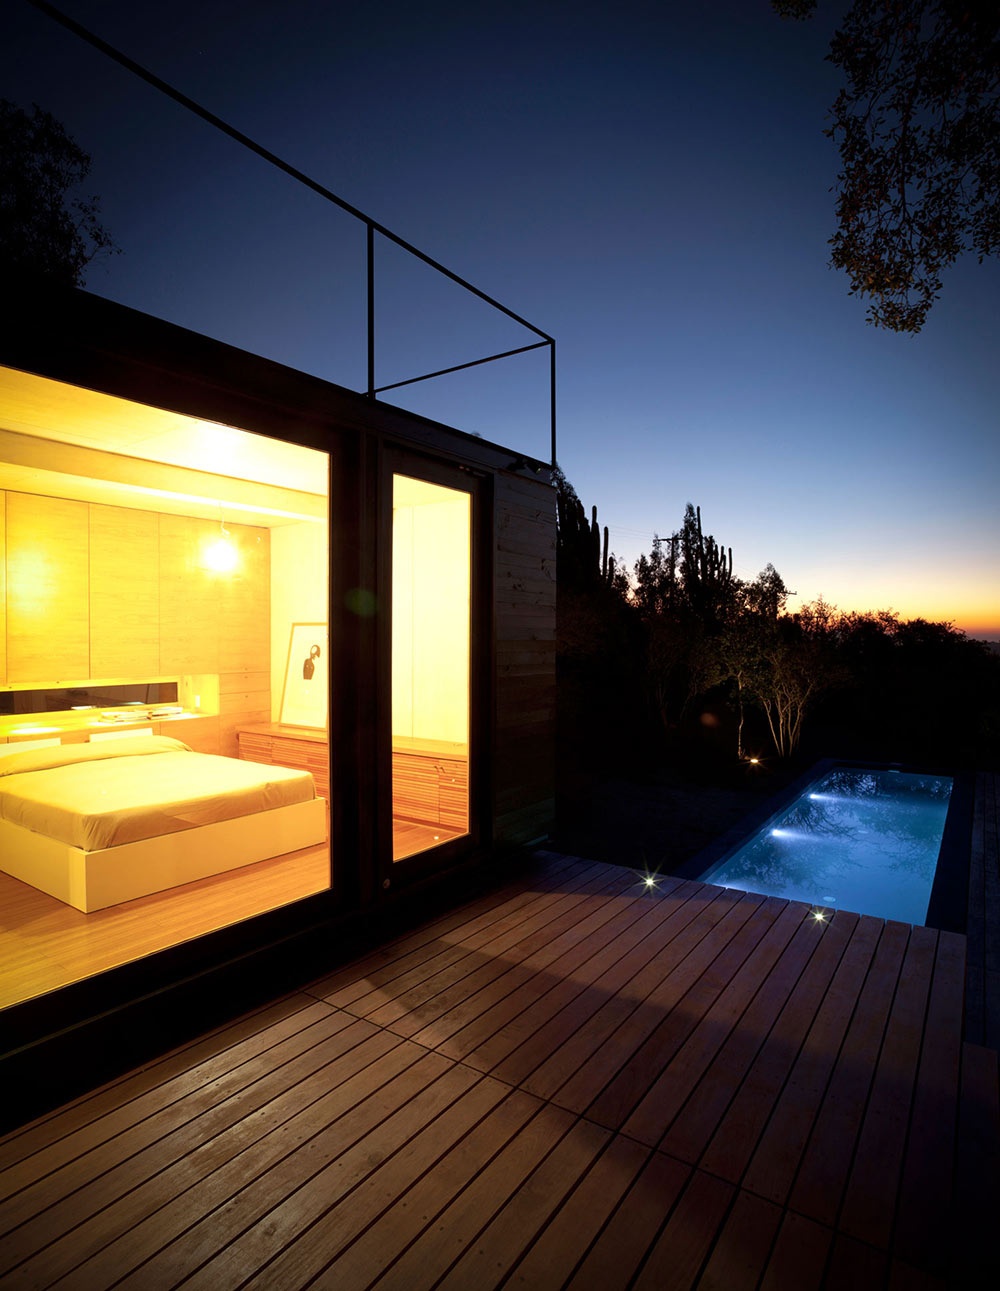 Bedroom, Deck, Pool Lighting, Pangal Cabin in Casablanca, Chile